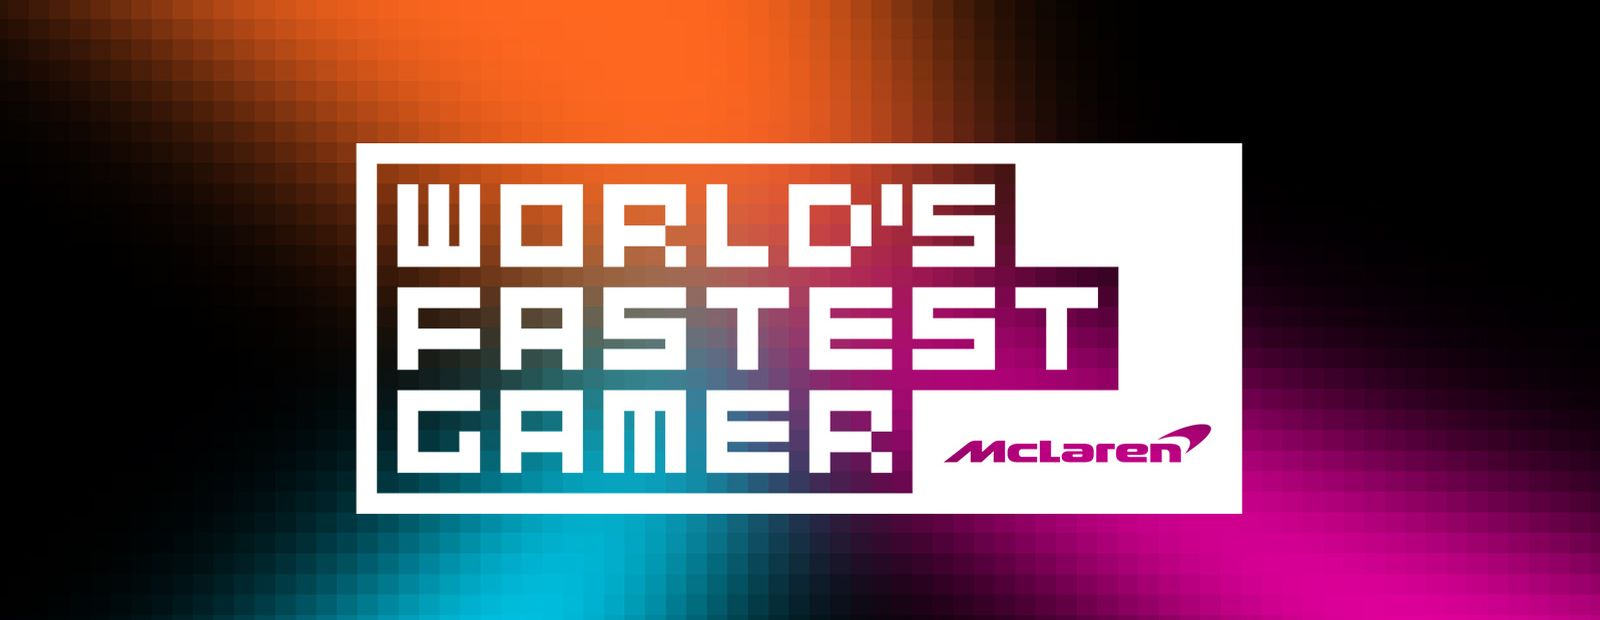 Registration now open for first round of McLaren's World's Fastest Gamer competition